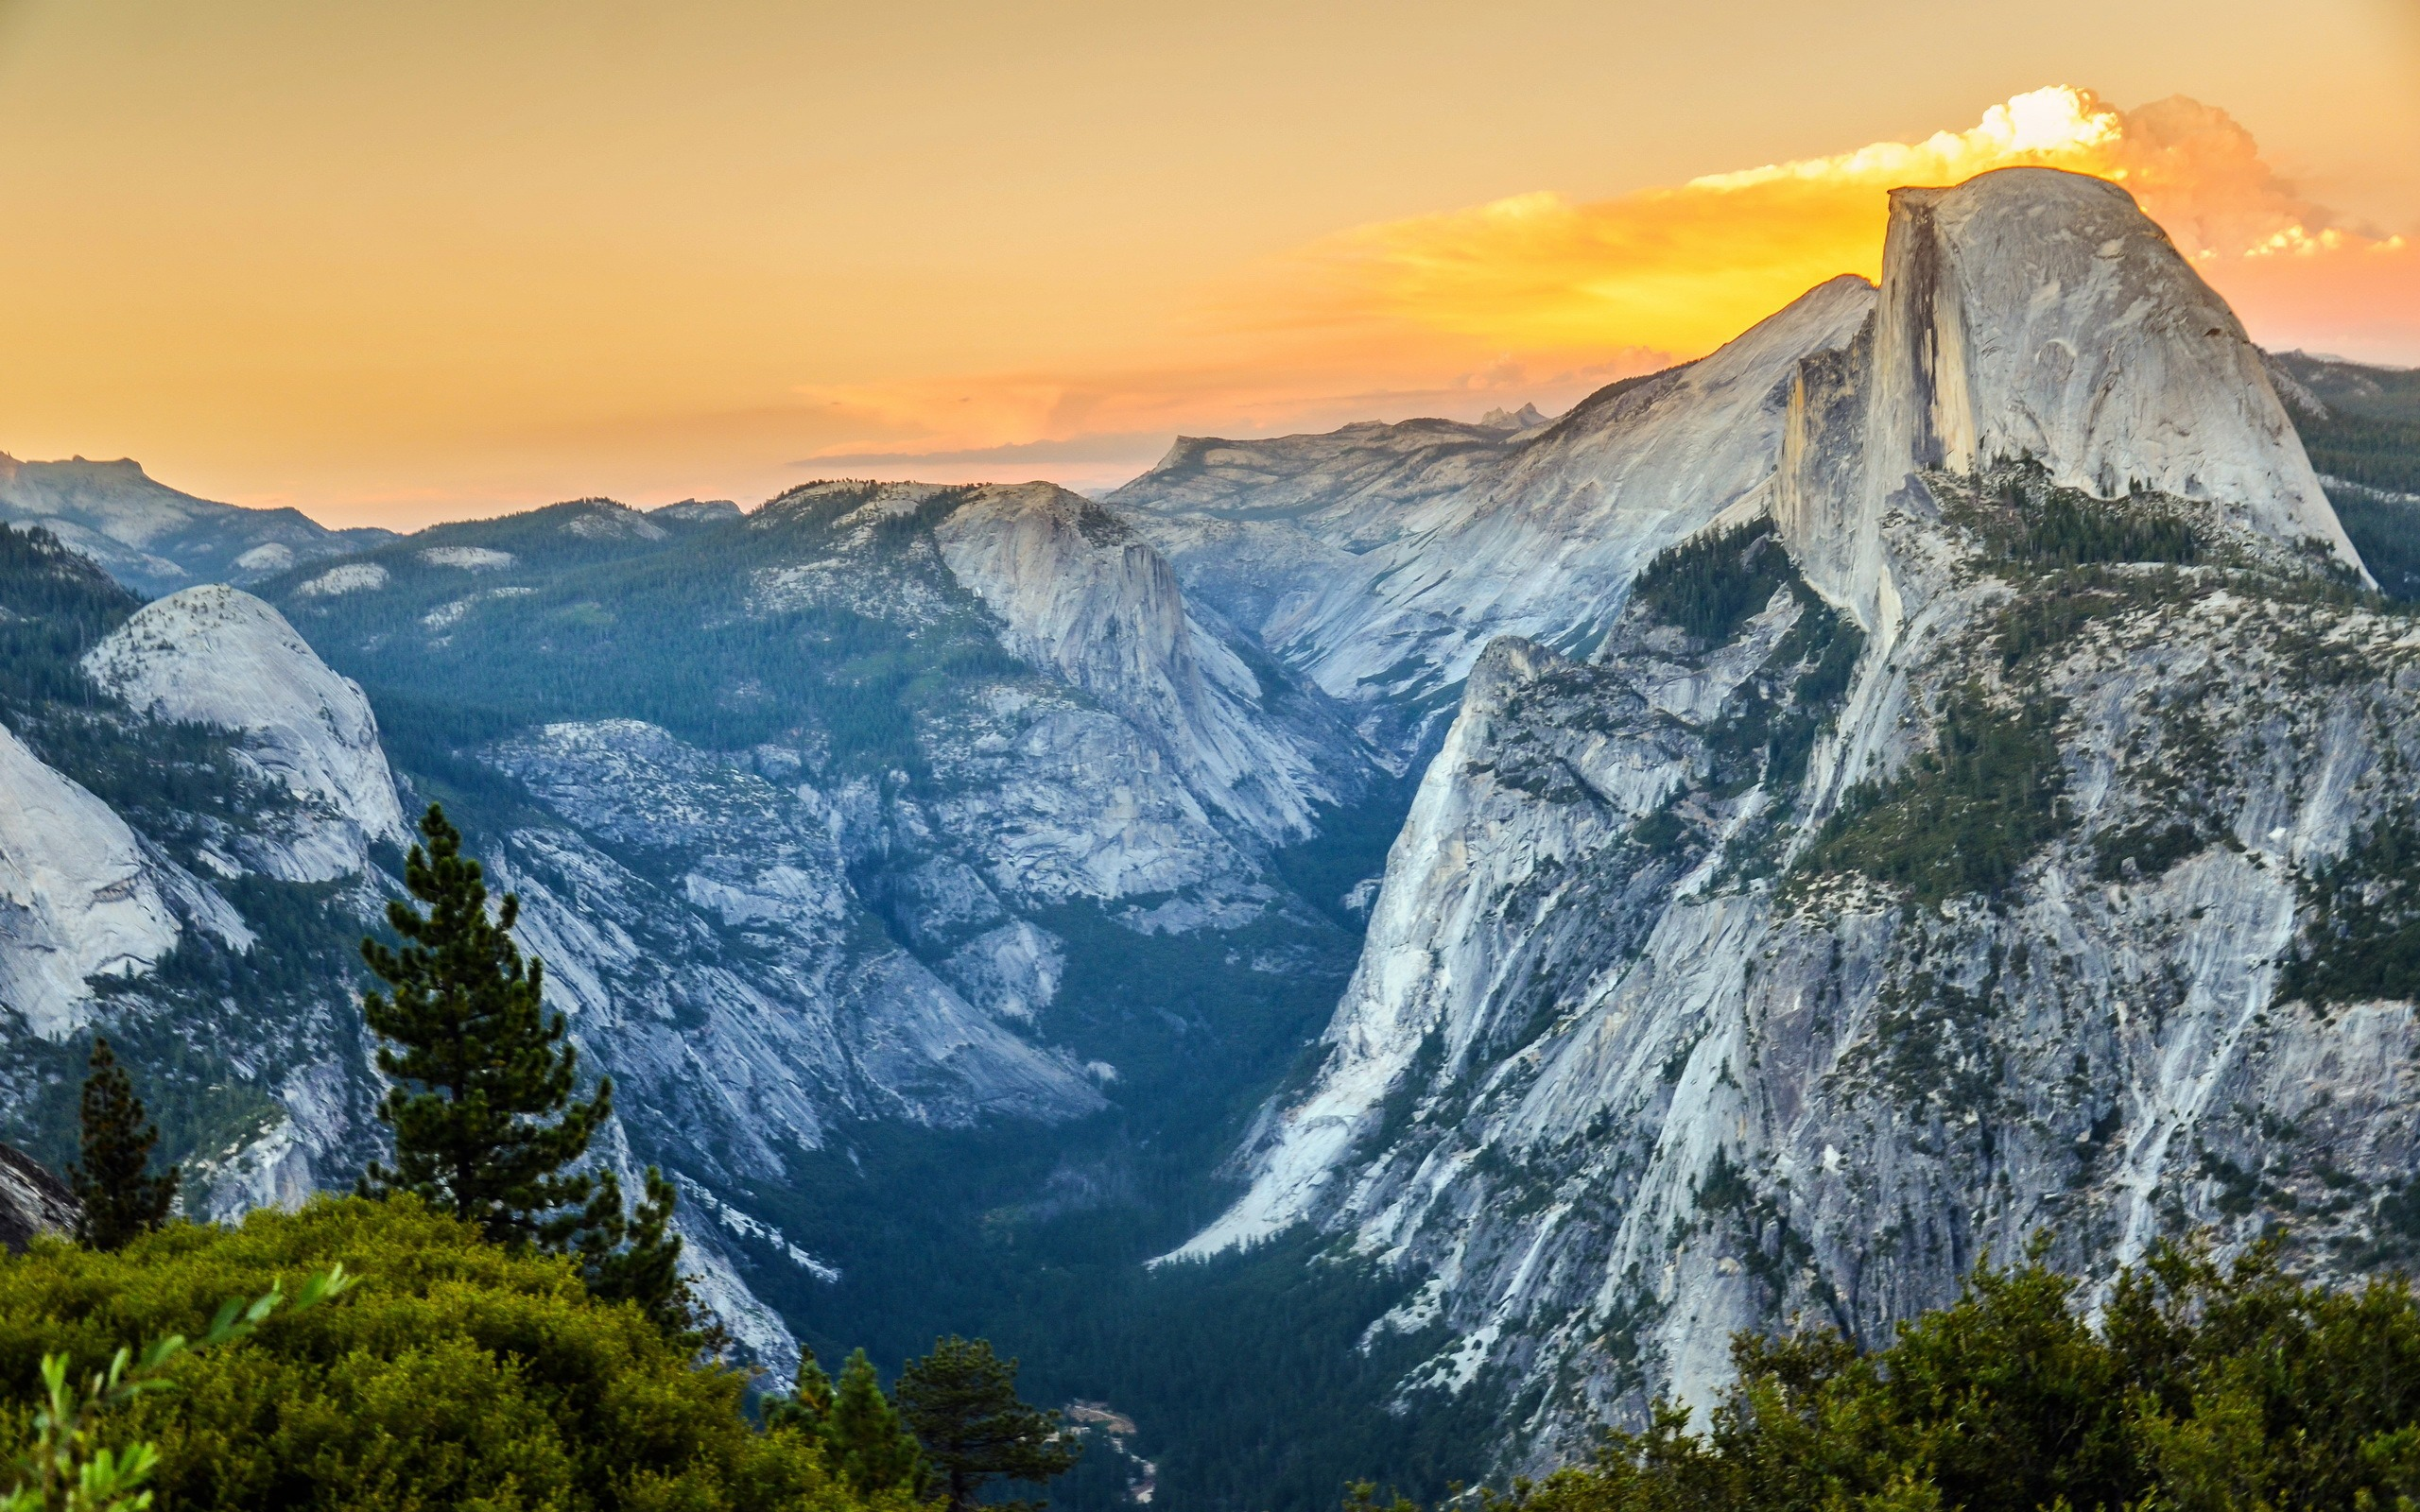 Yosemite National Park Mountains Nature Hd Wallpaper Preview